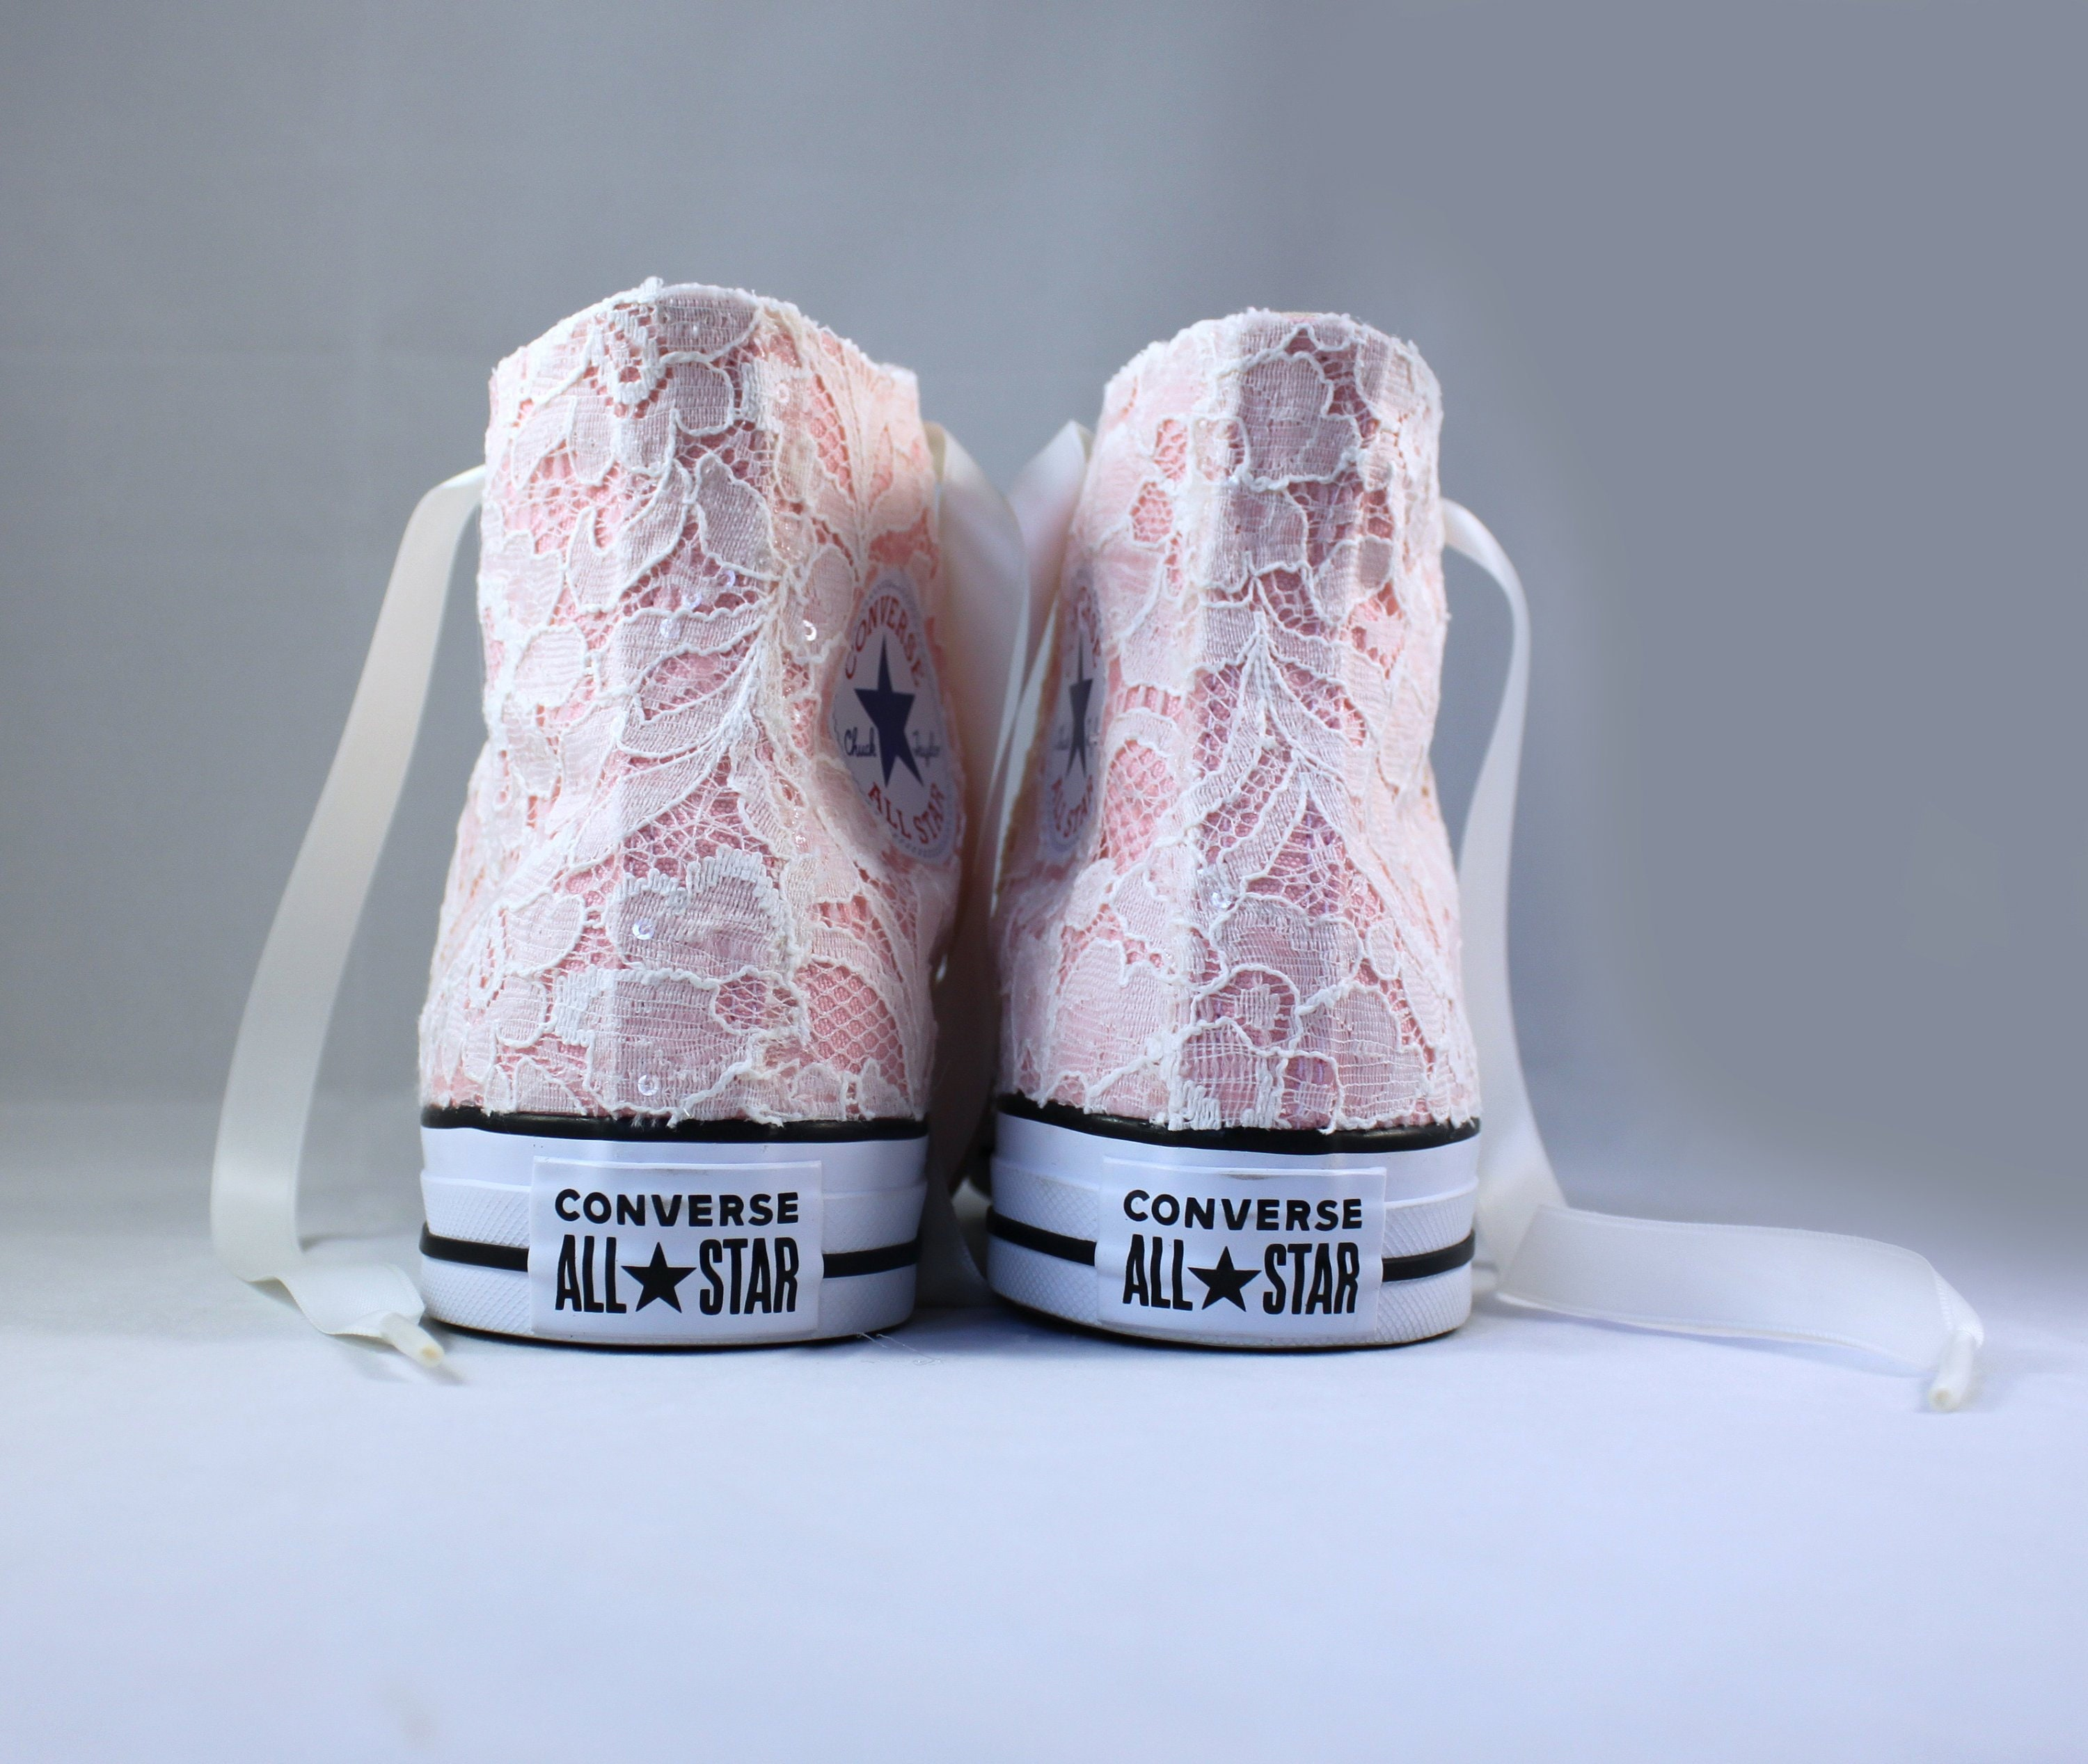 321a658c759fac new style converse all star high tops 5 colours 51dd3 4c6b5  switzerland  ivory lace high top converses storm pink bridal converses wedding tennis  shoes ...